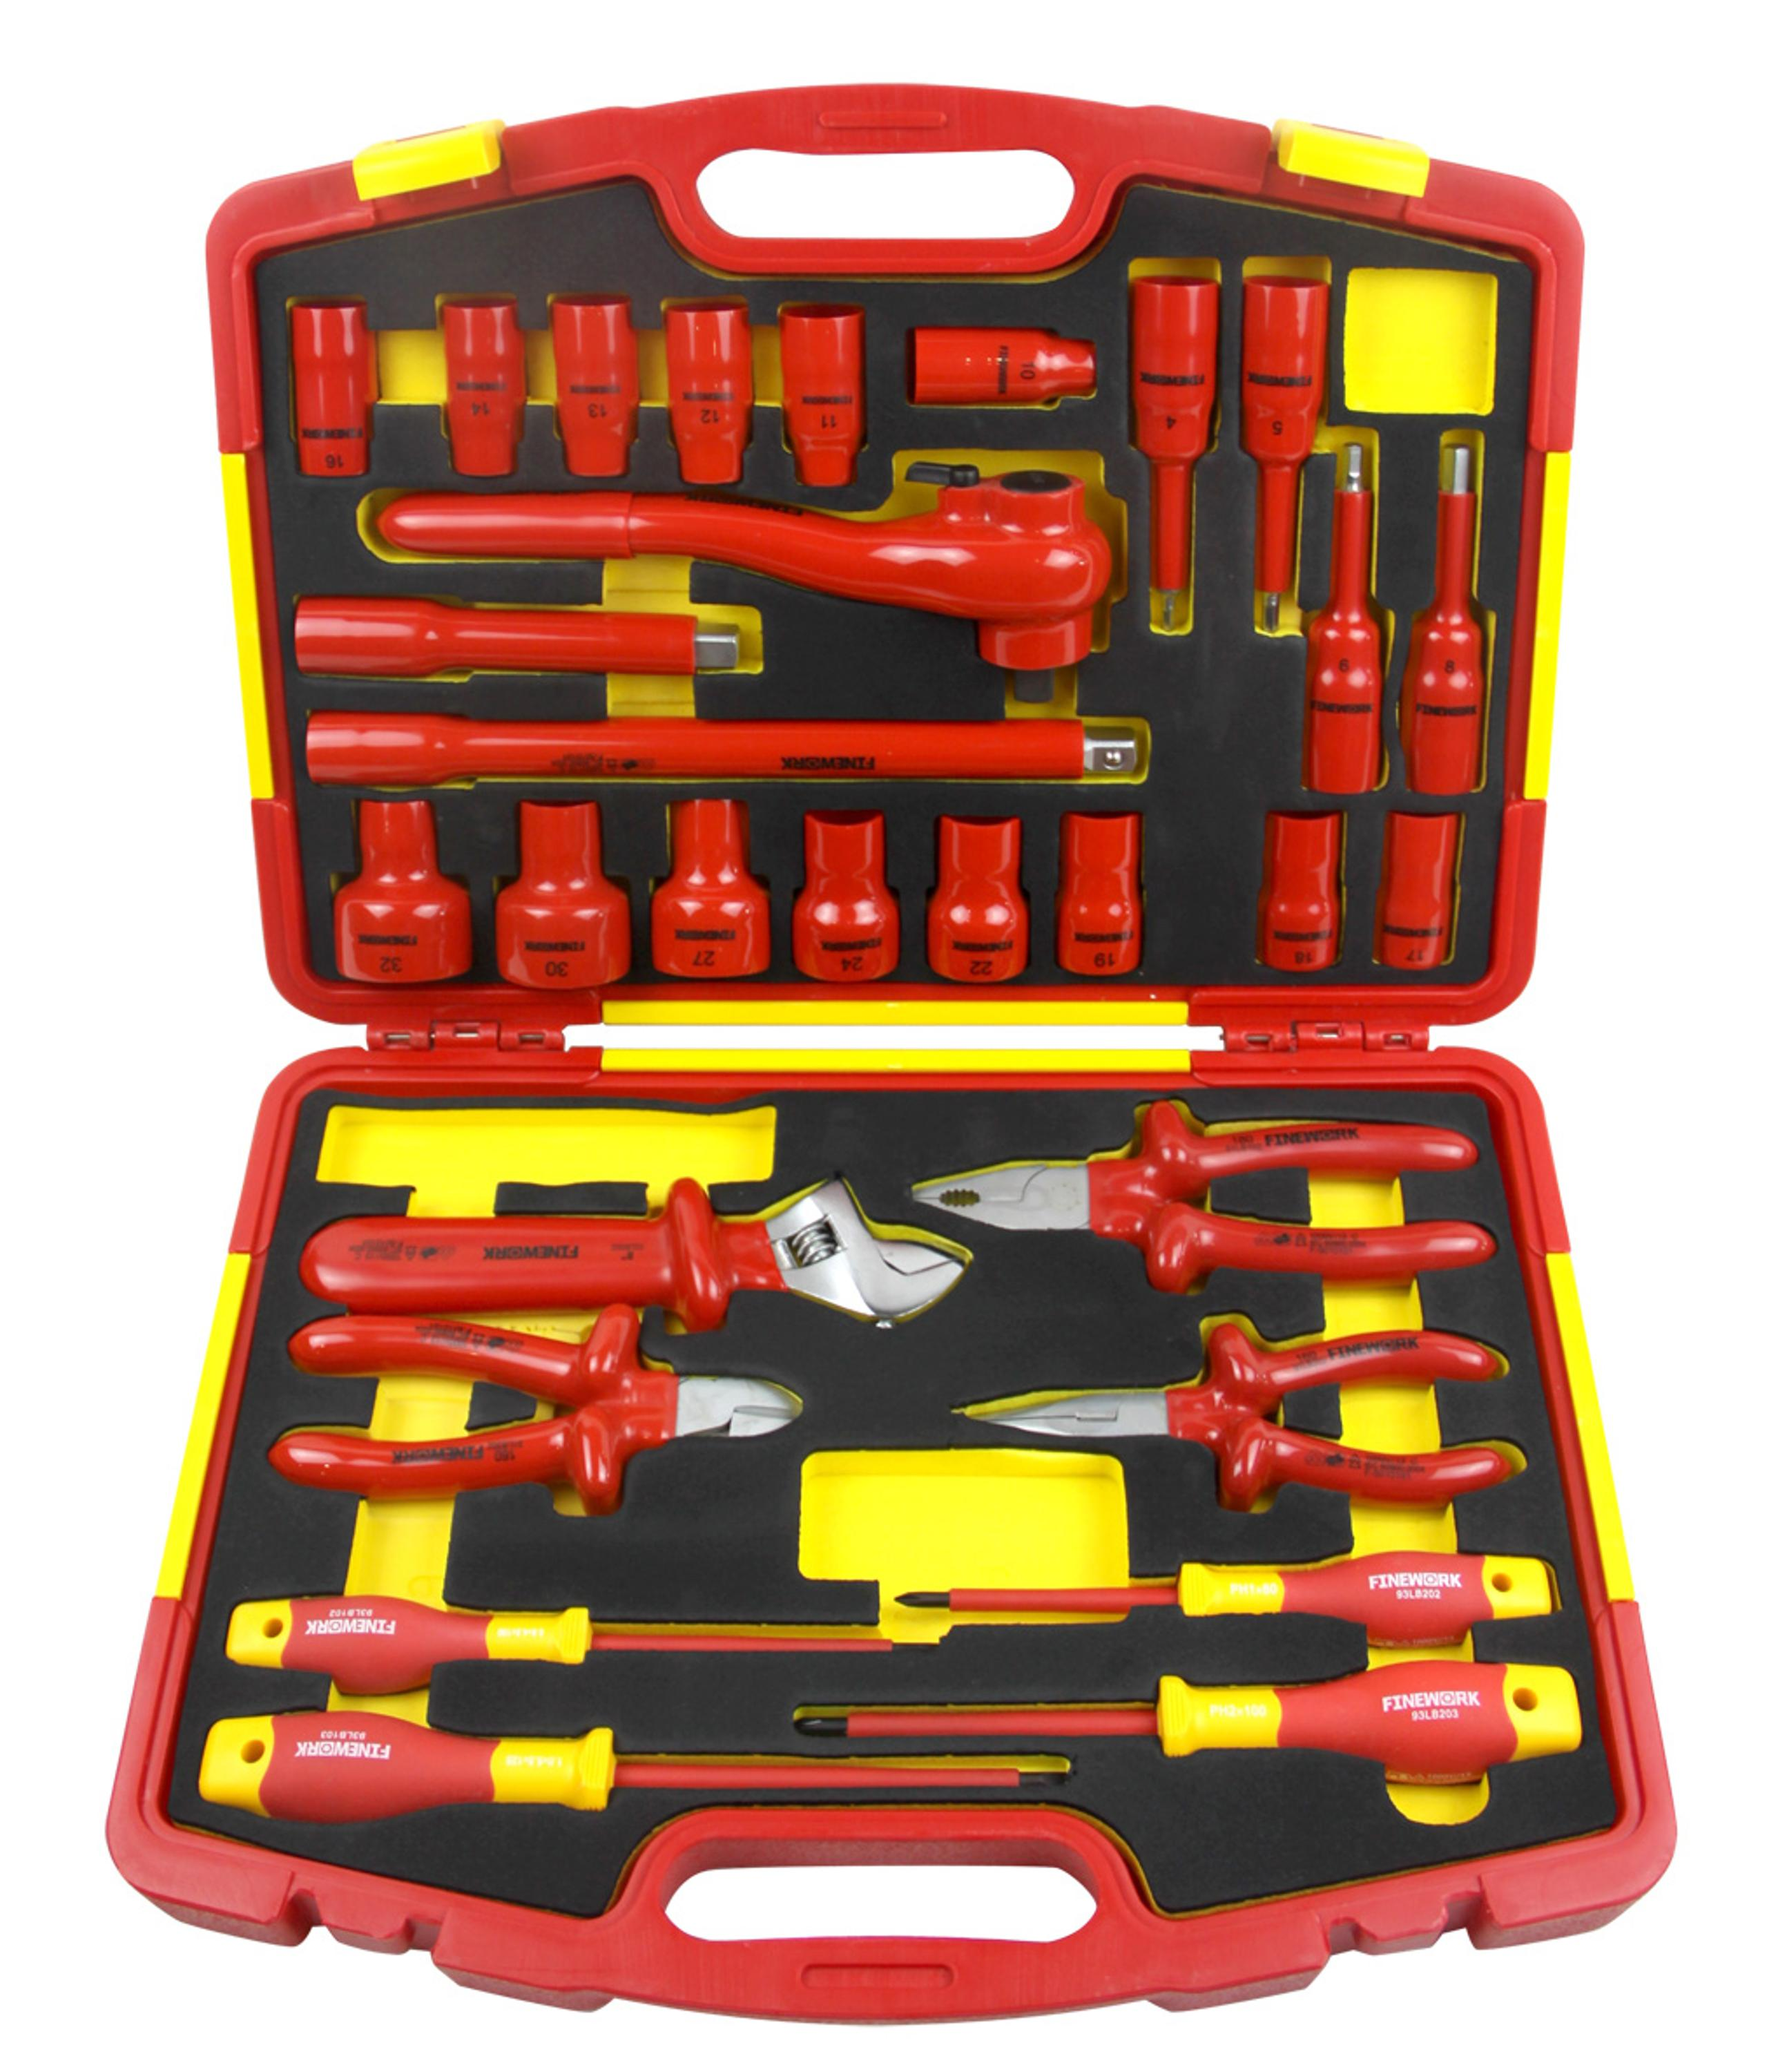 99LB003 China VDE 29PCS Insulated Mechanical Electrical Combination Home Household Box Hand Tool Set